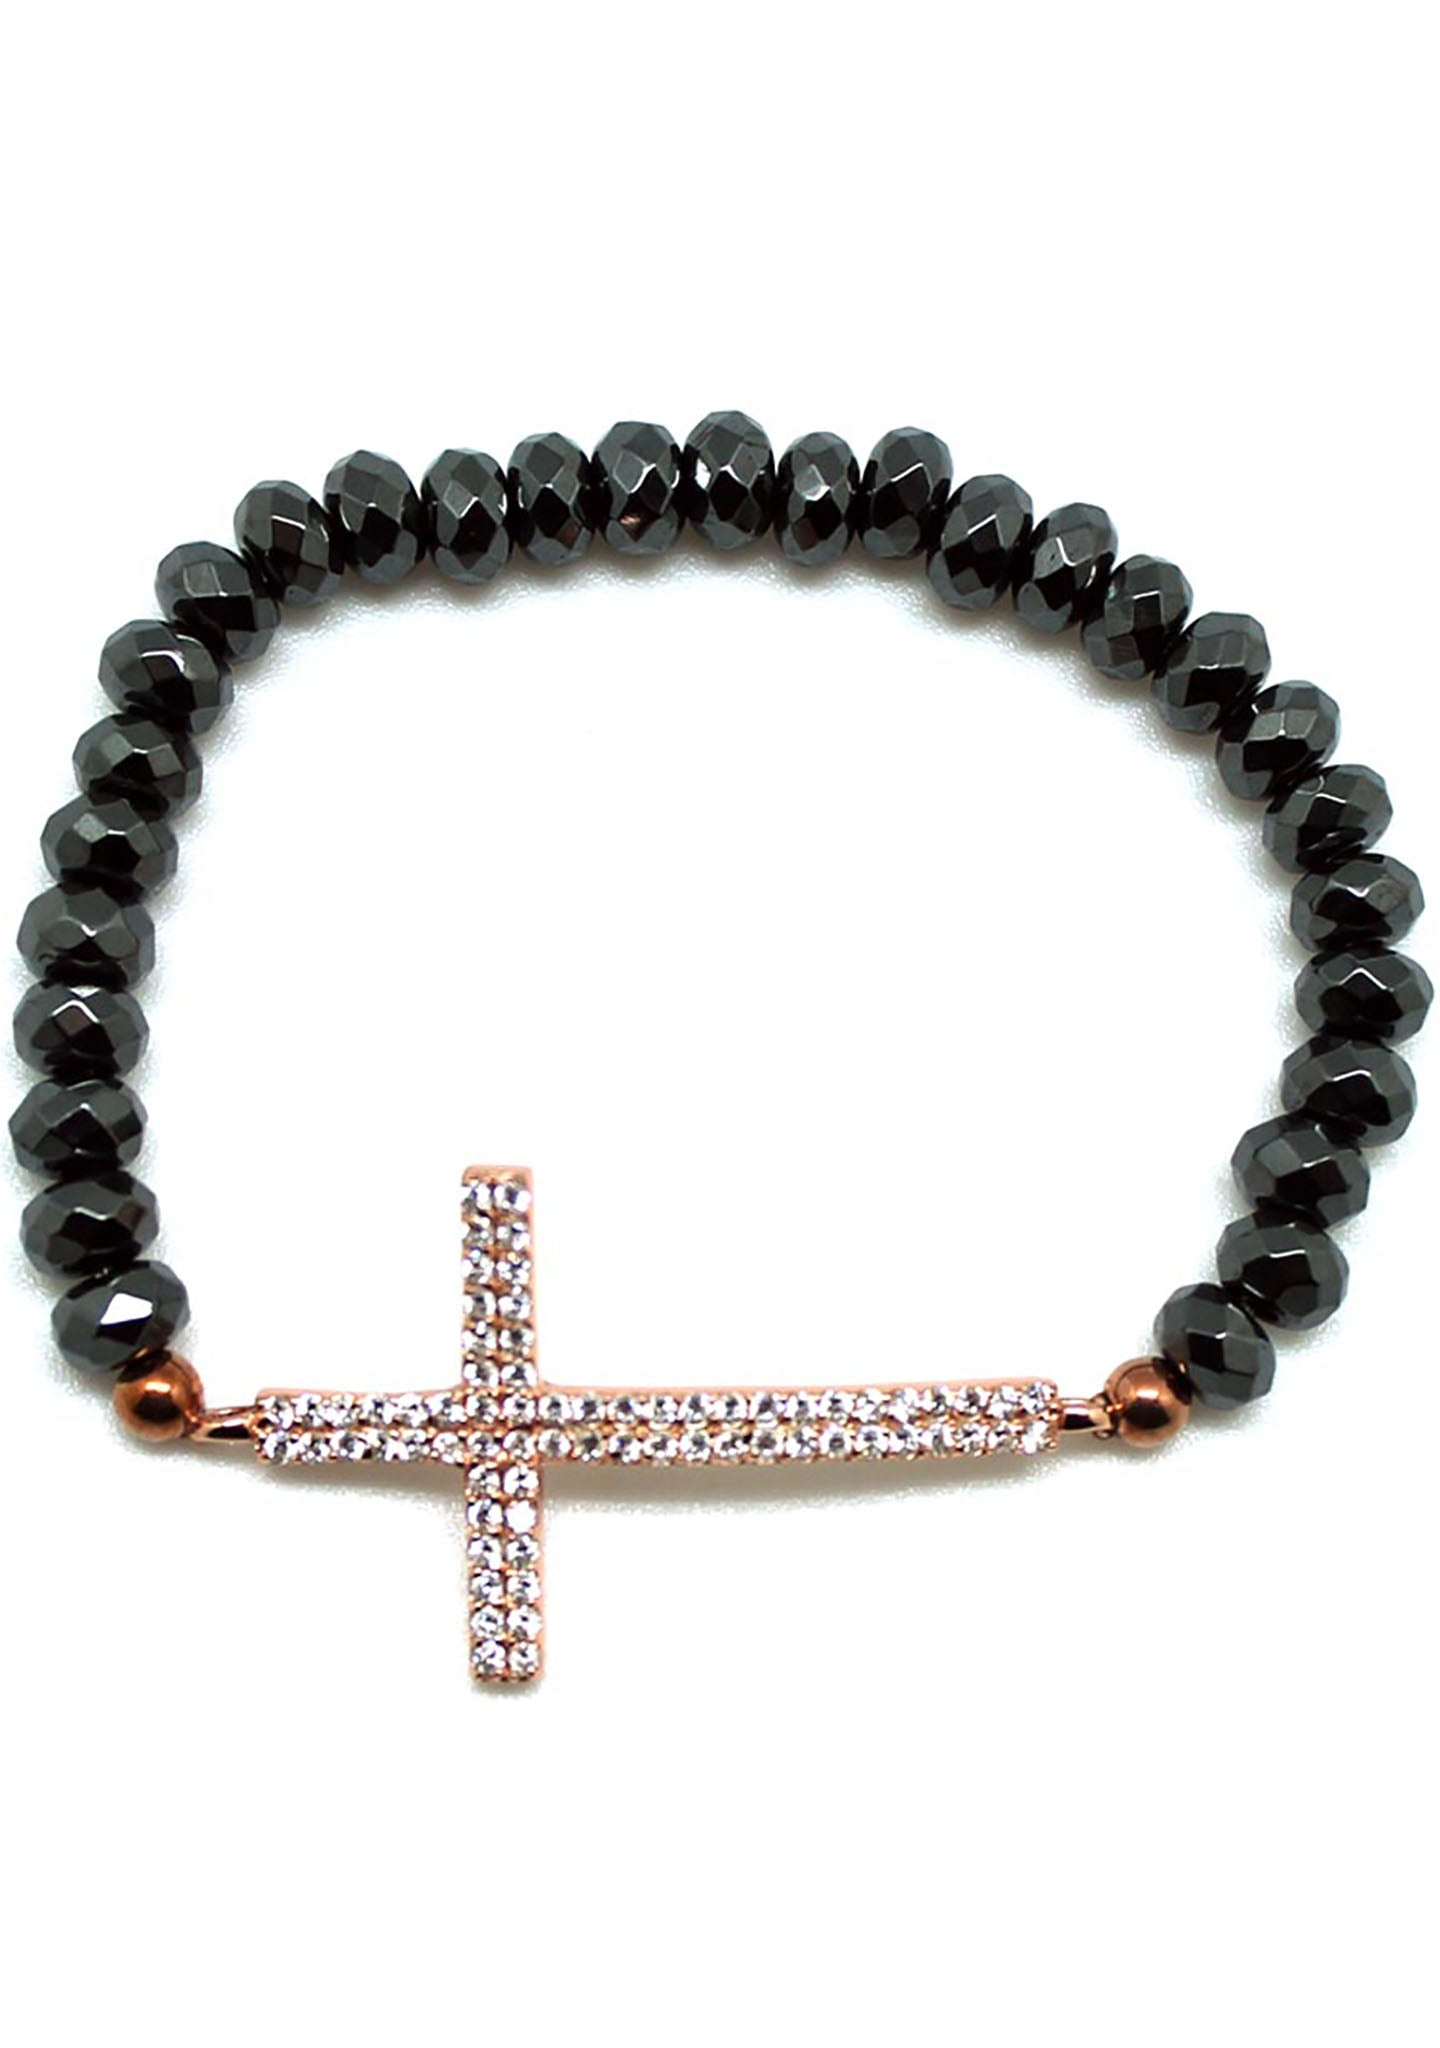 7 LUXE Crystal Cross Beaded Bracelet in Gunmetal